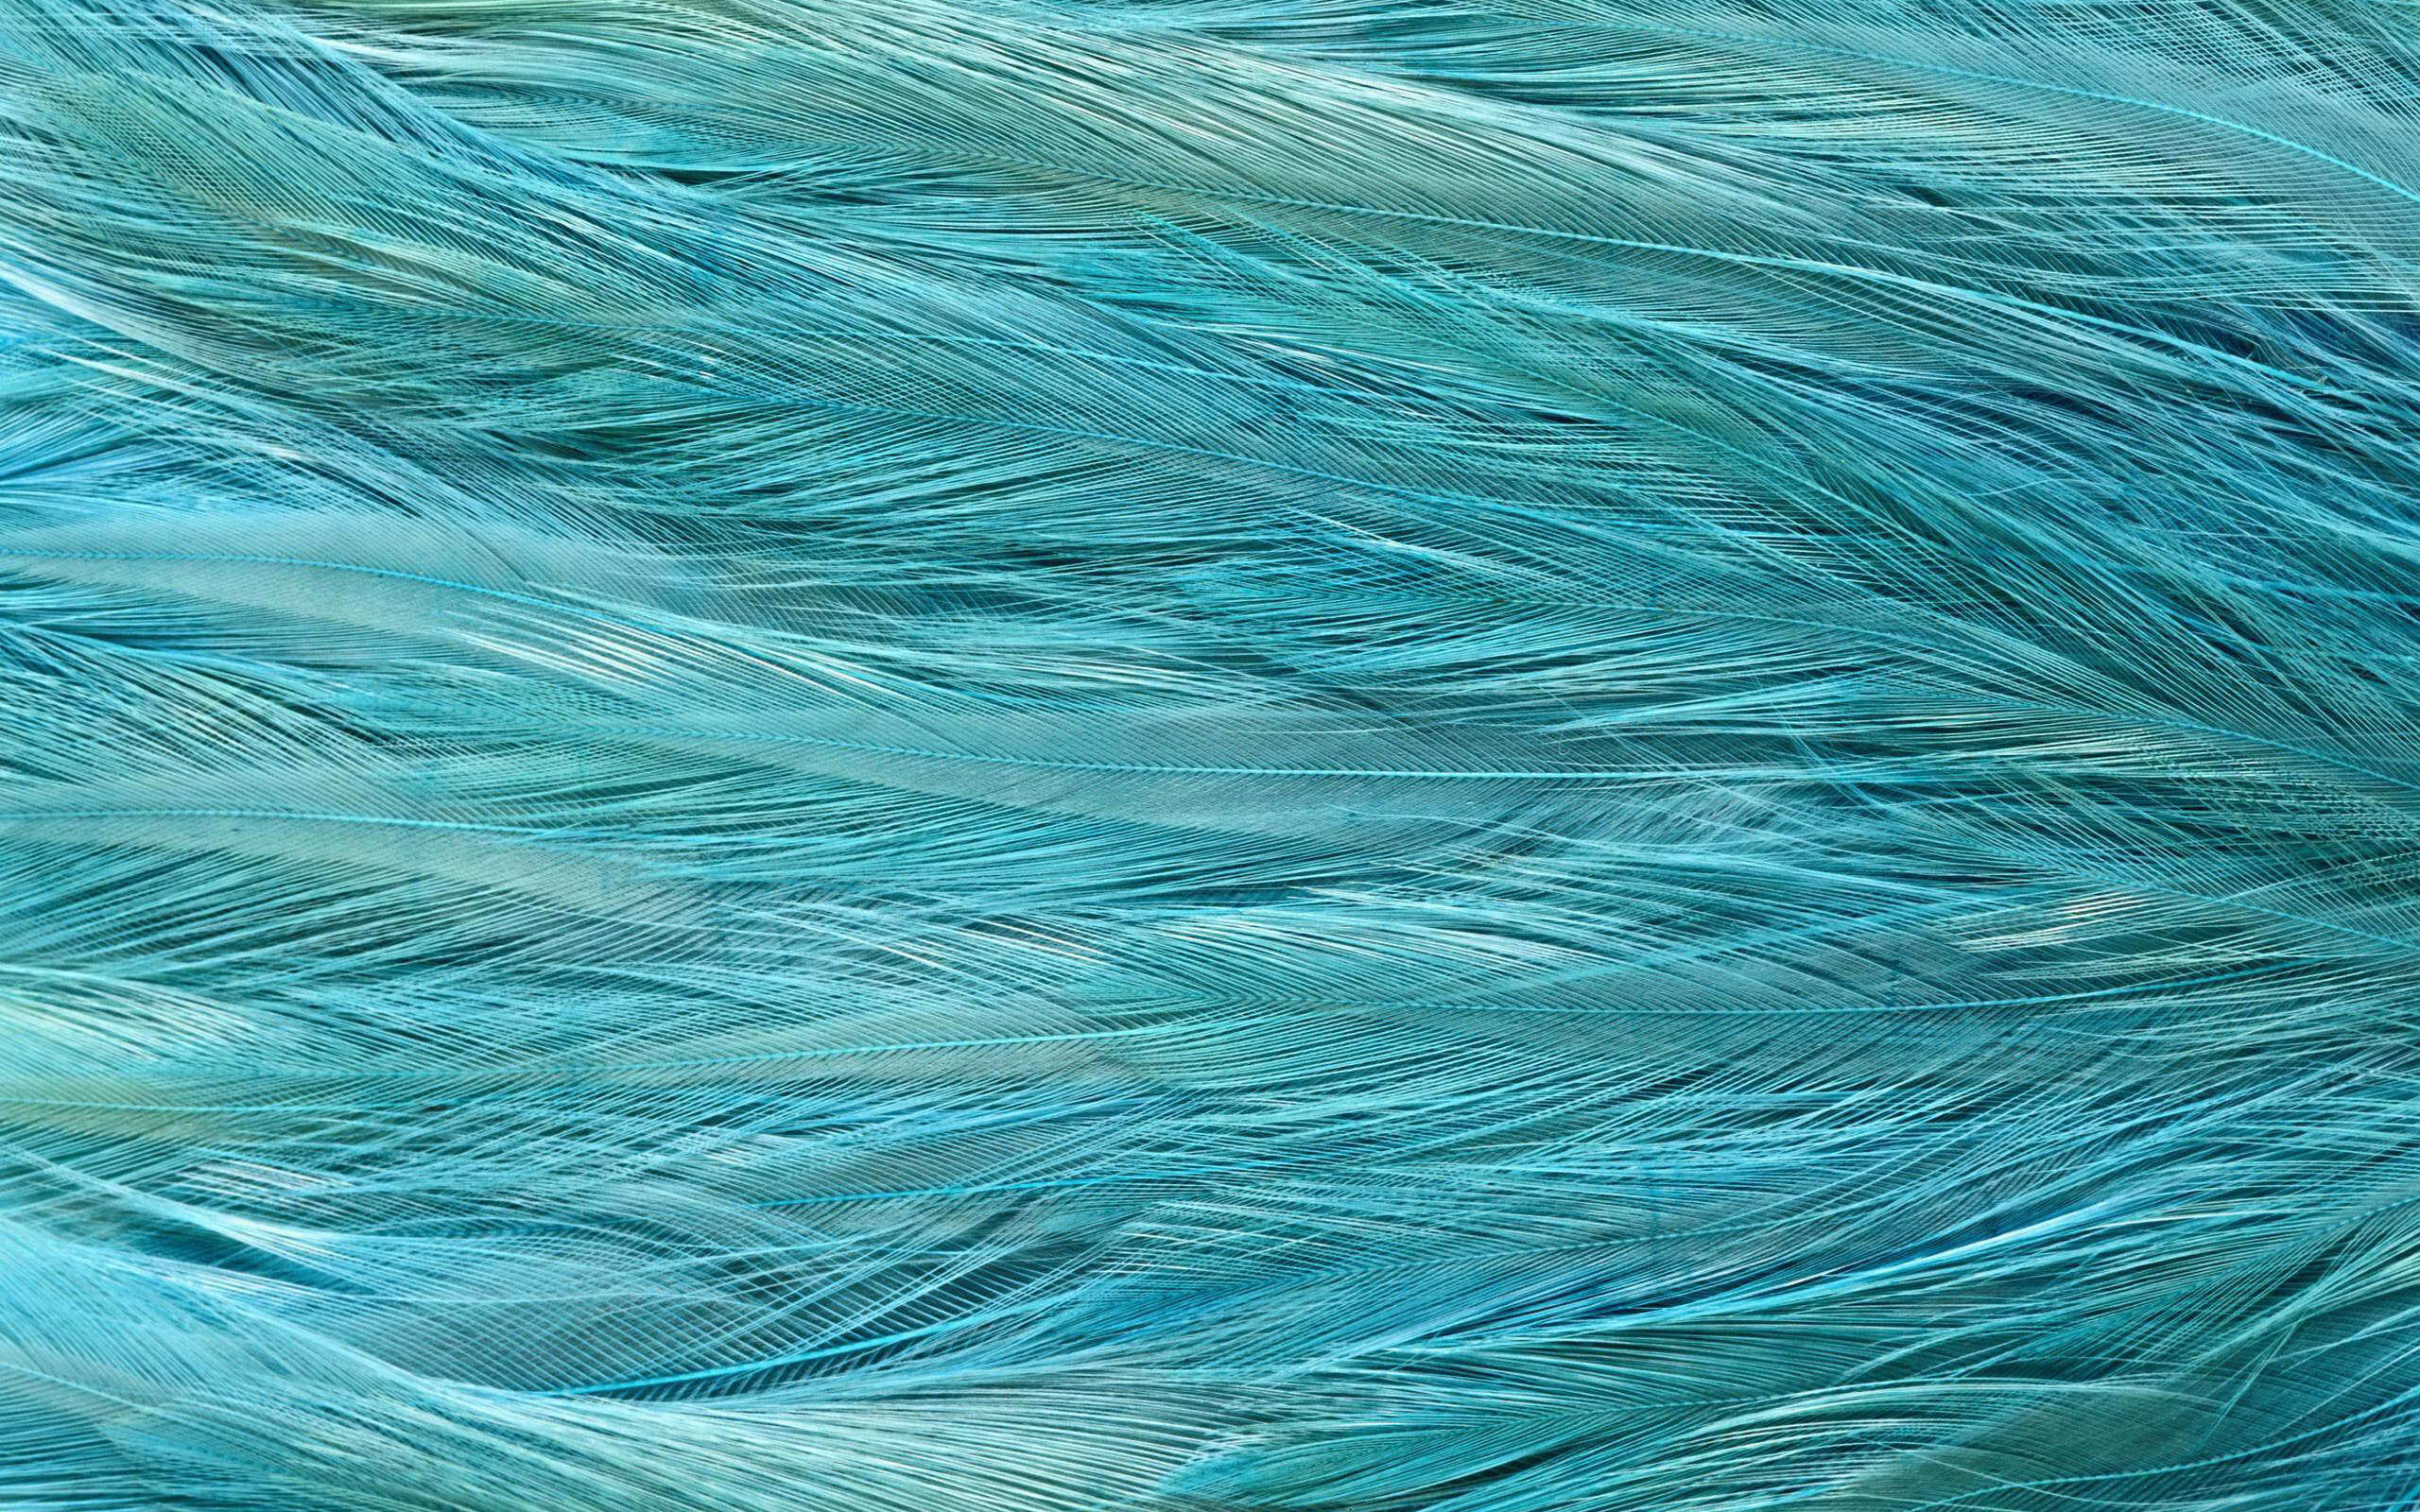 Feather texture wallpaper   1206871 2560x1600